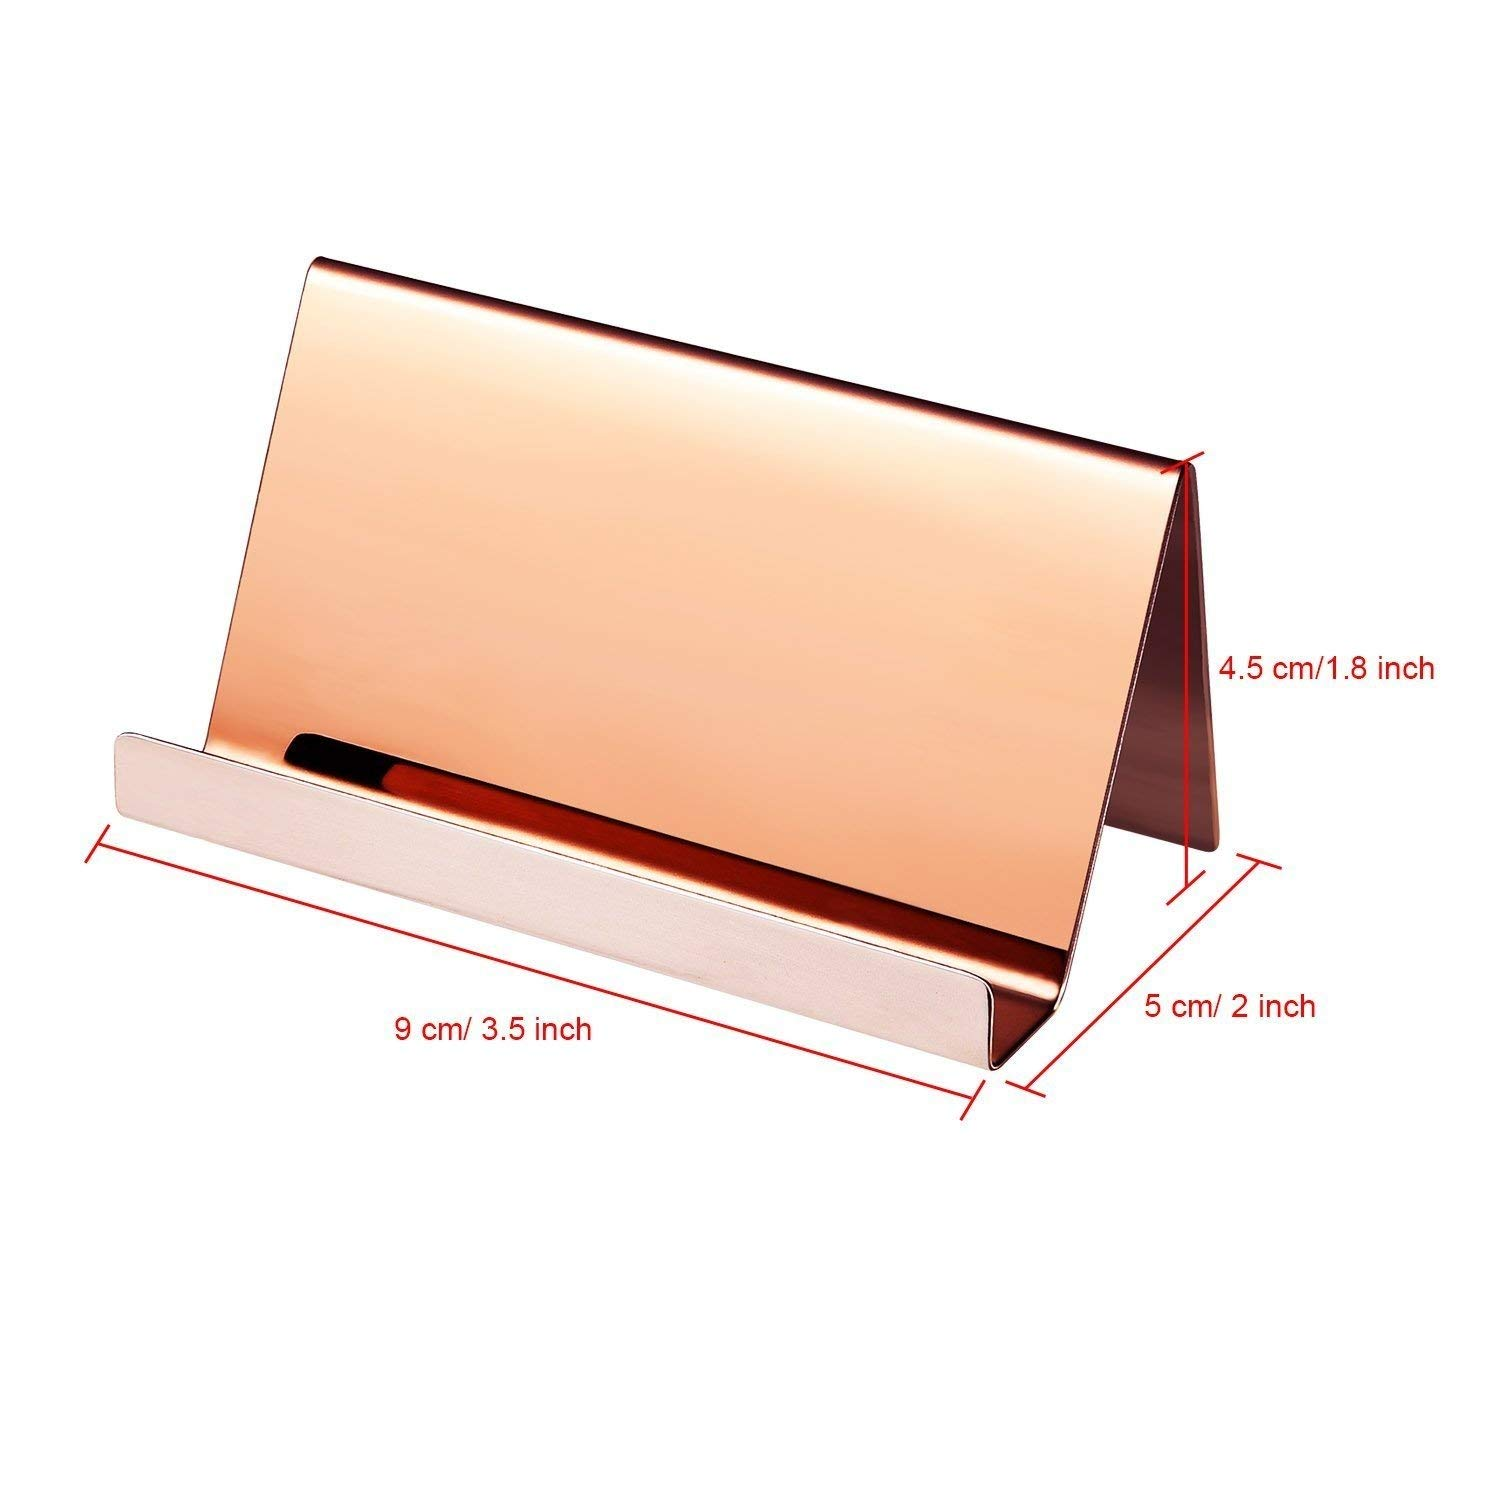 table business card holder.jpg